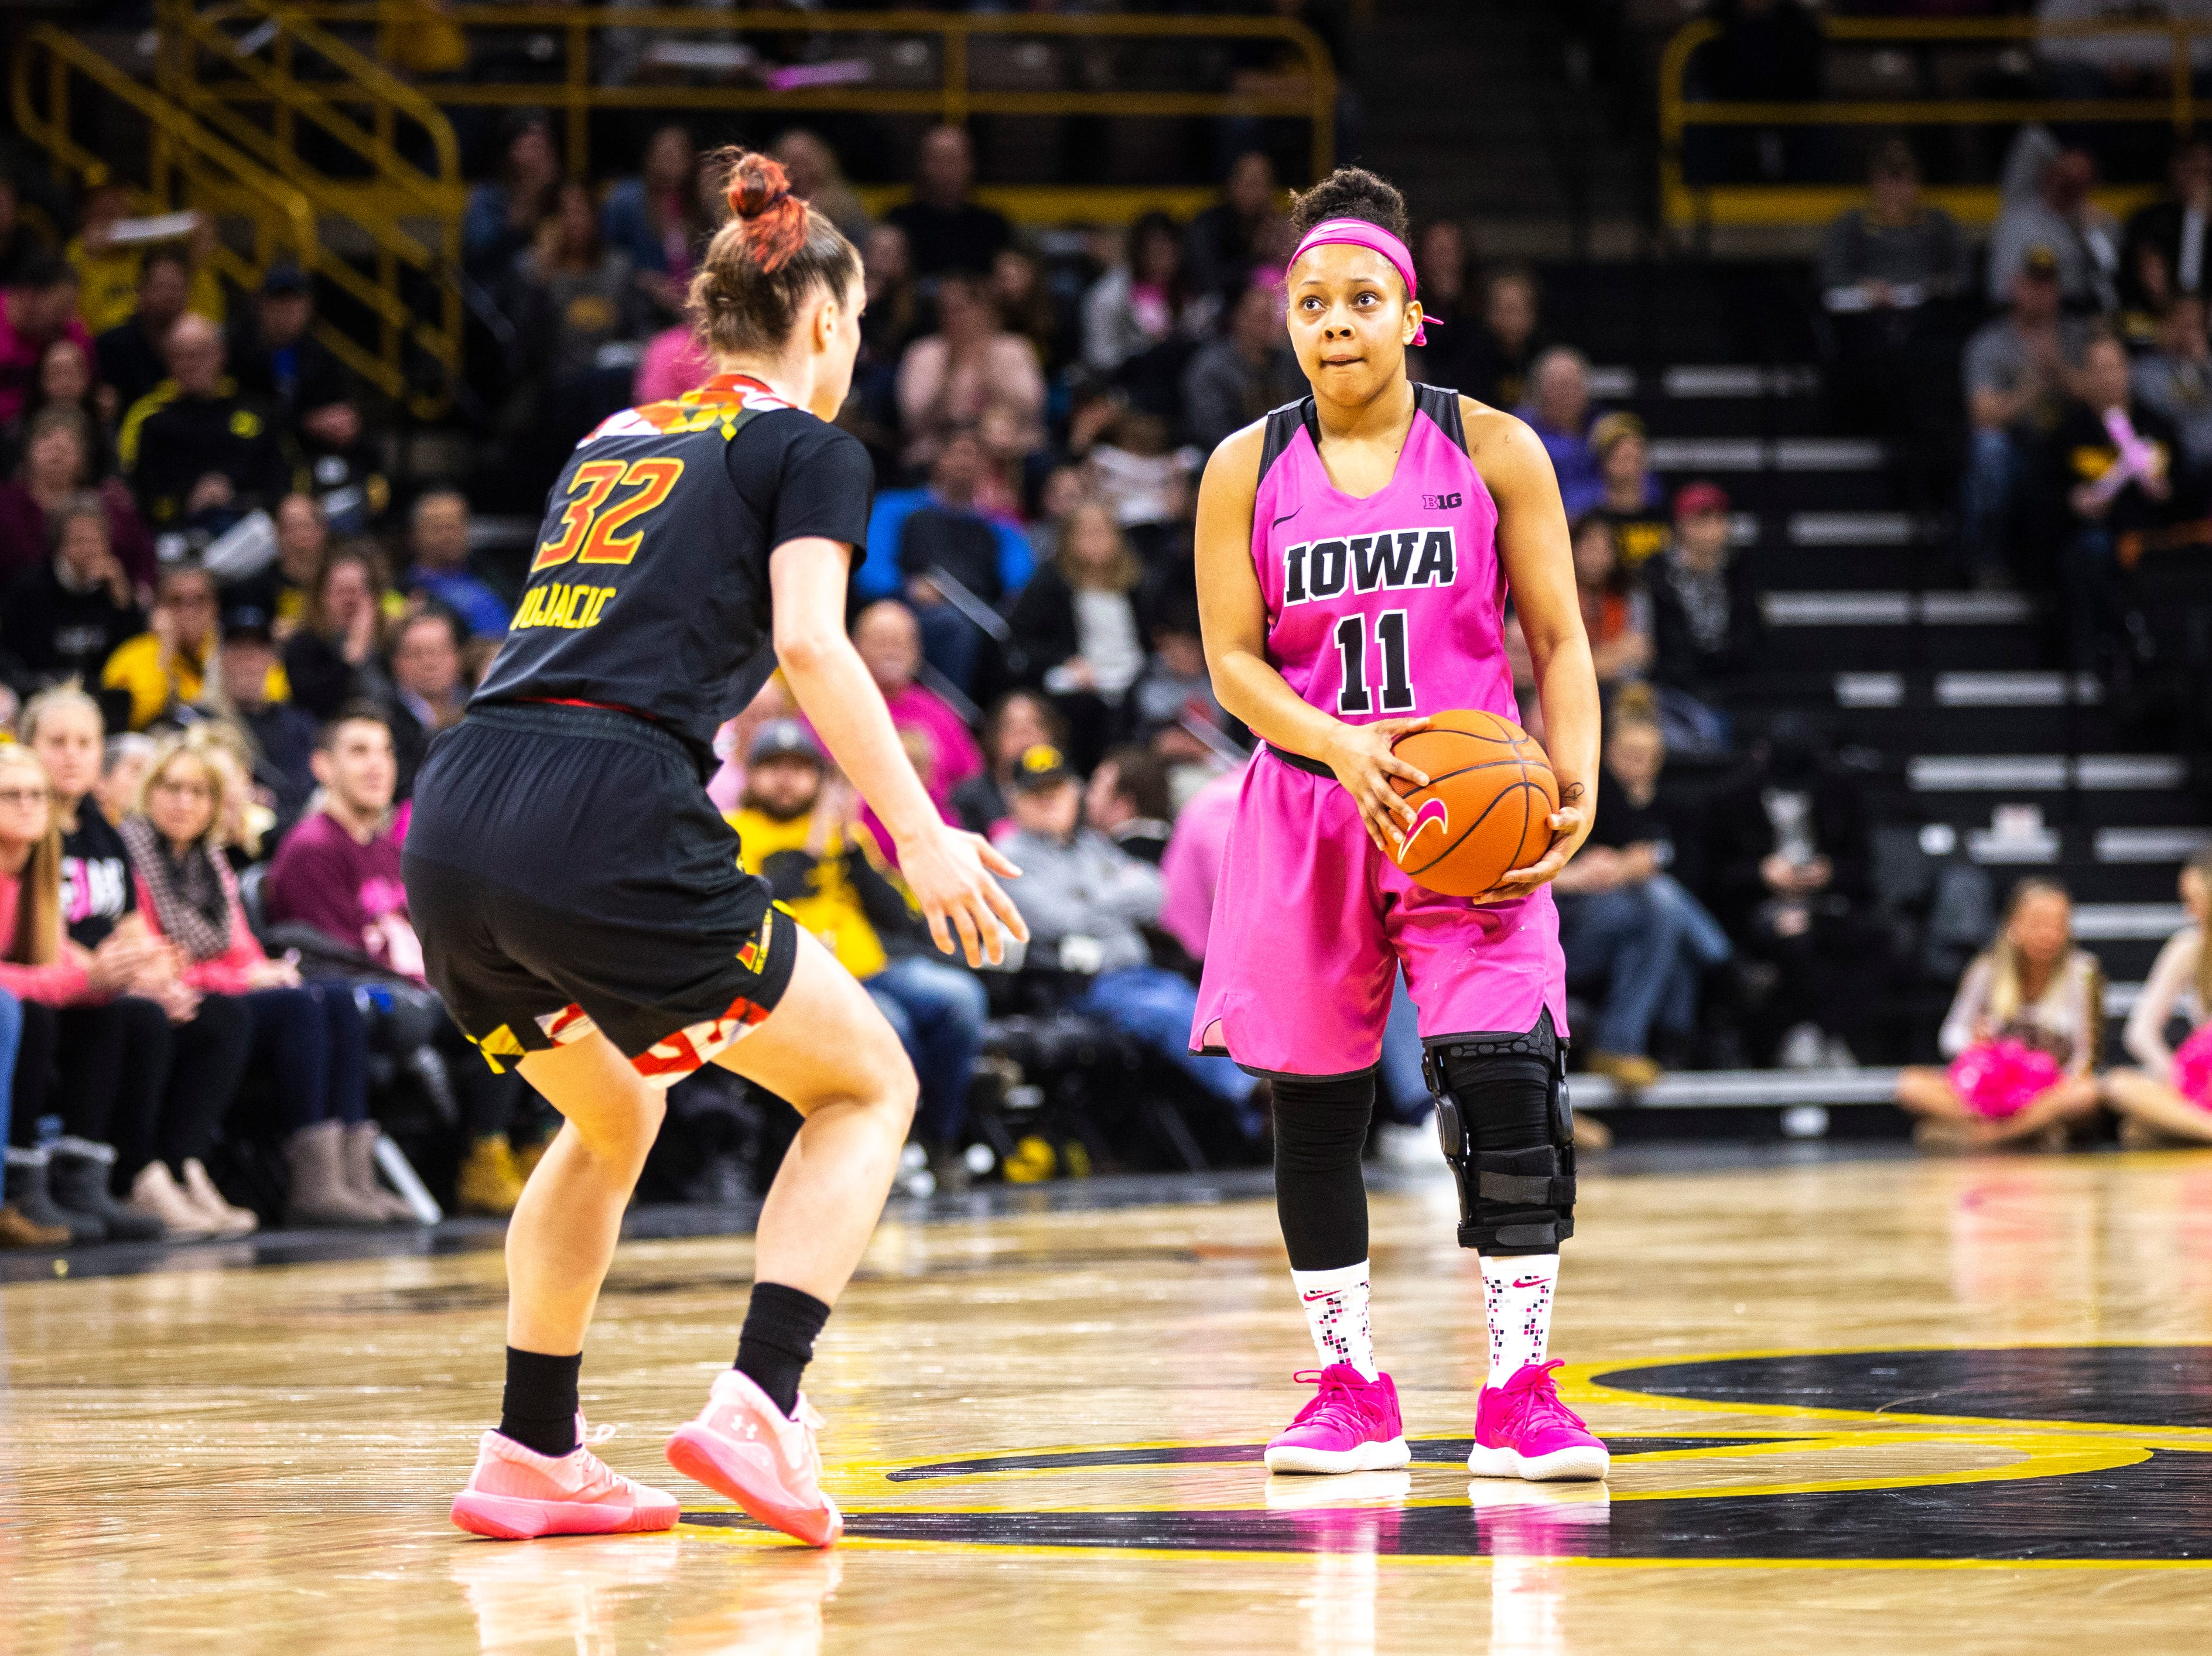 Iowa guard Tania Davis (11) watches the shot clock wind down while Maryland guard Sara Vujacic (32) defends during a NCAA Big Ten Conference women's basketball game on Sunday, Feb. 17, 2019 at Carver-Hawkeye Arena in Iowa City, Iowa.